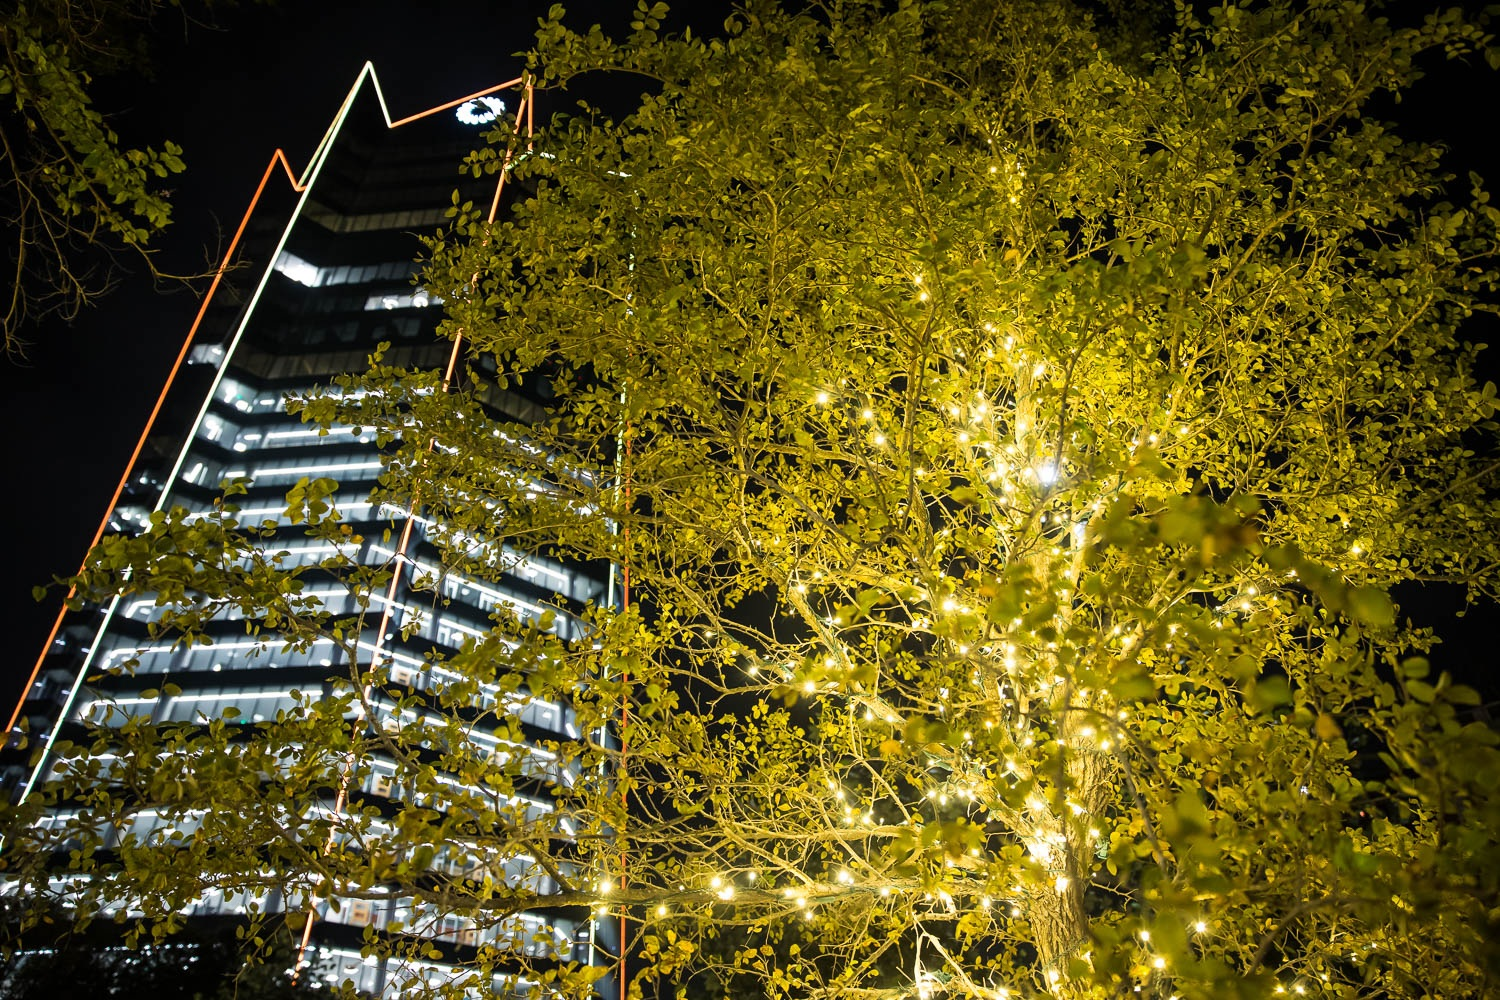 The Frost Tower lit up for the holidays on Nov. 26, 2020. Photo by Stephanie Marquez | Heron contributor